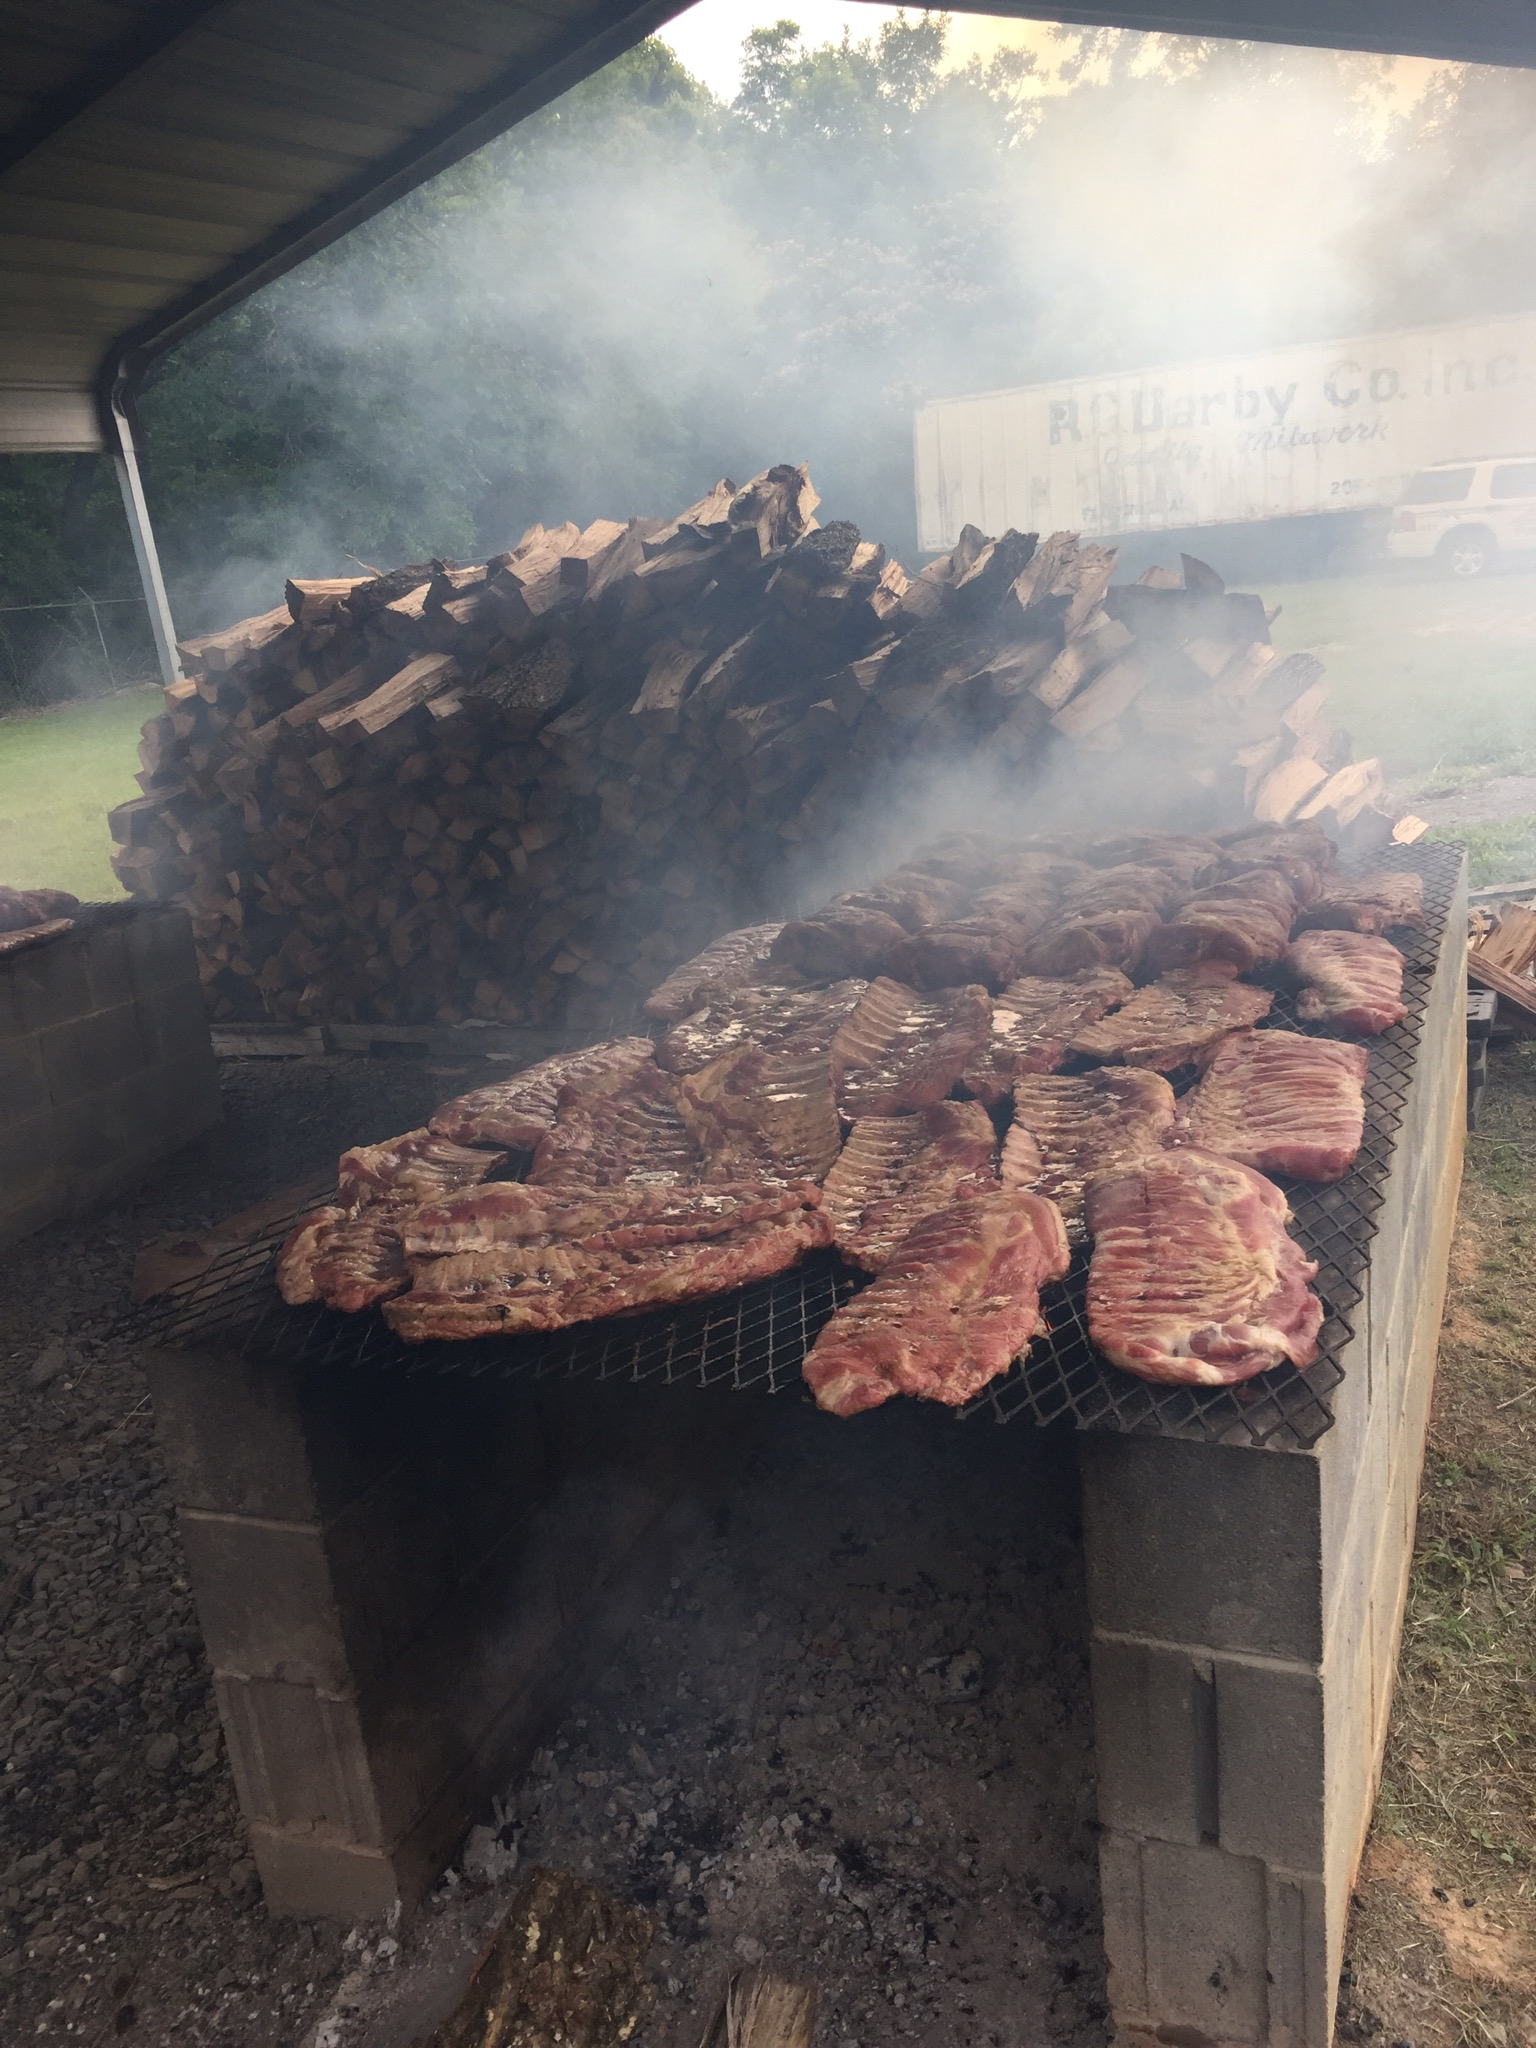 Smoking Meat for our Annual Fundraiser